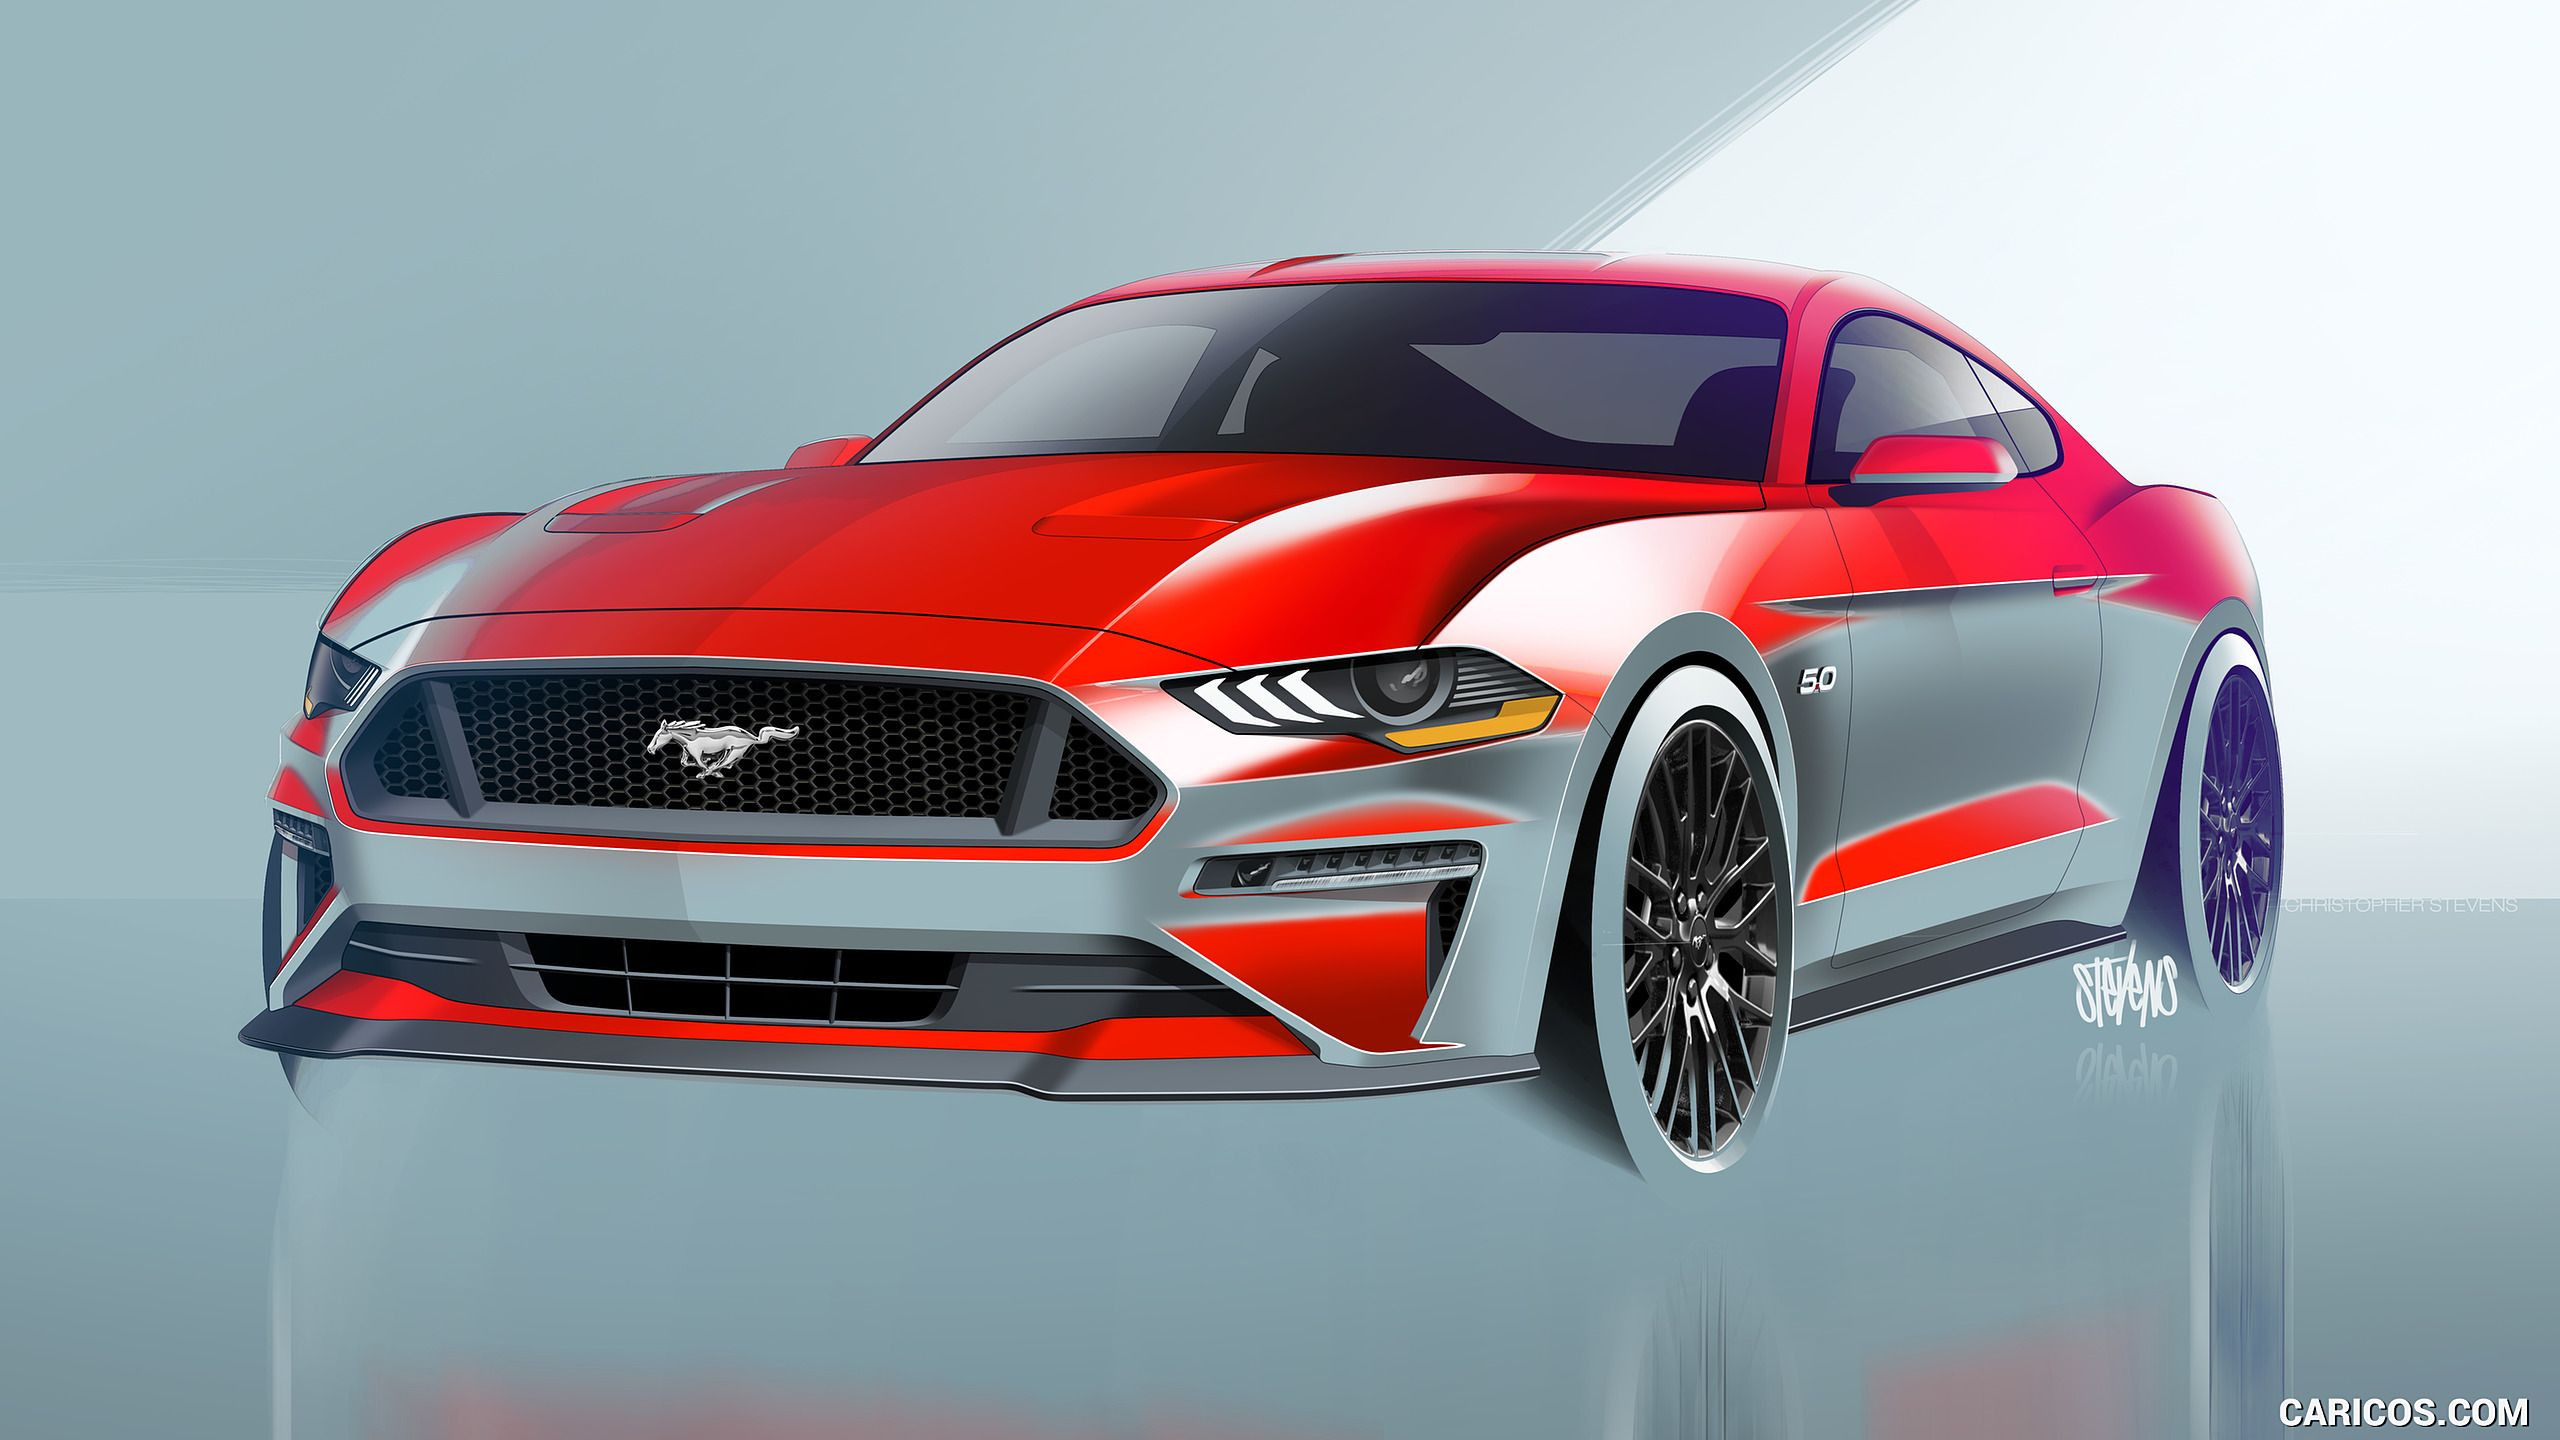 2018 Ford Mustang Design Sketch HD